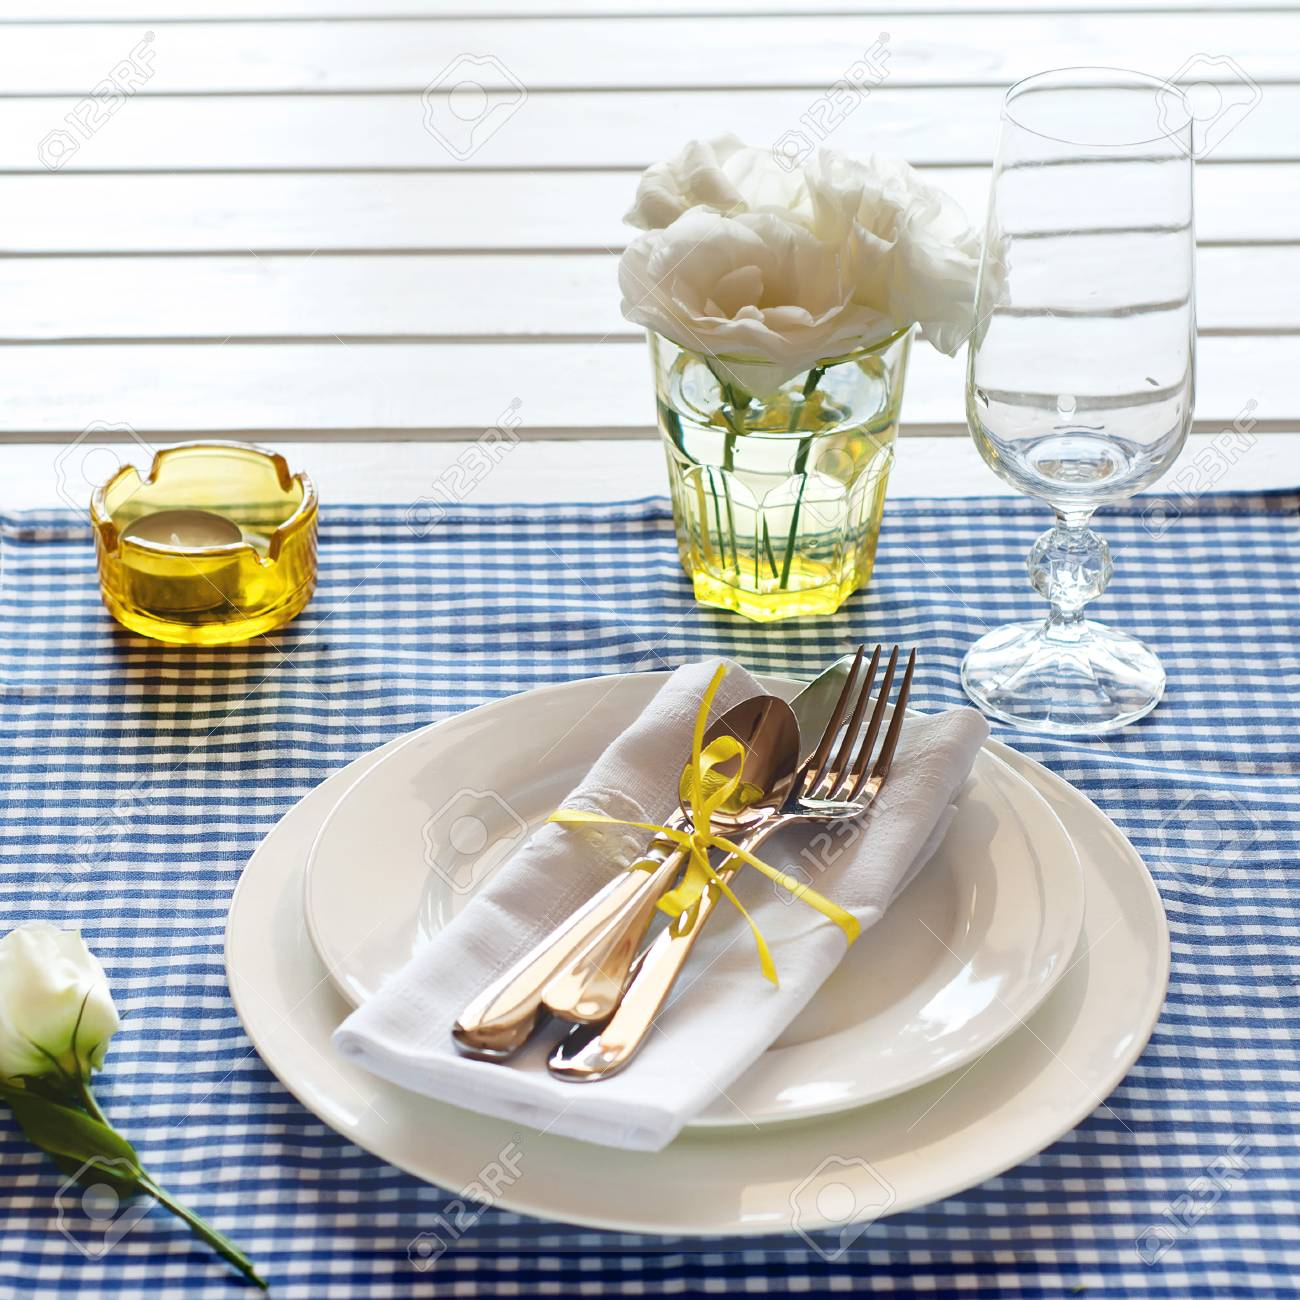 Stock Photo   Table Setting With Blue Checkered Tablecloth, White Napkin,  Silverware, Yellow Decoration And Flowers